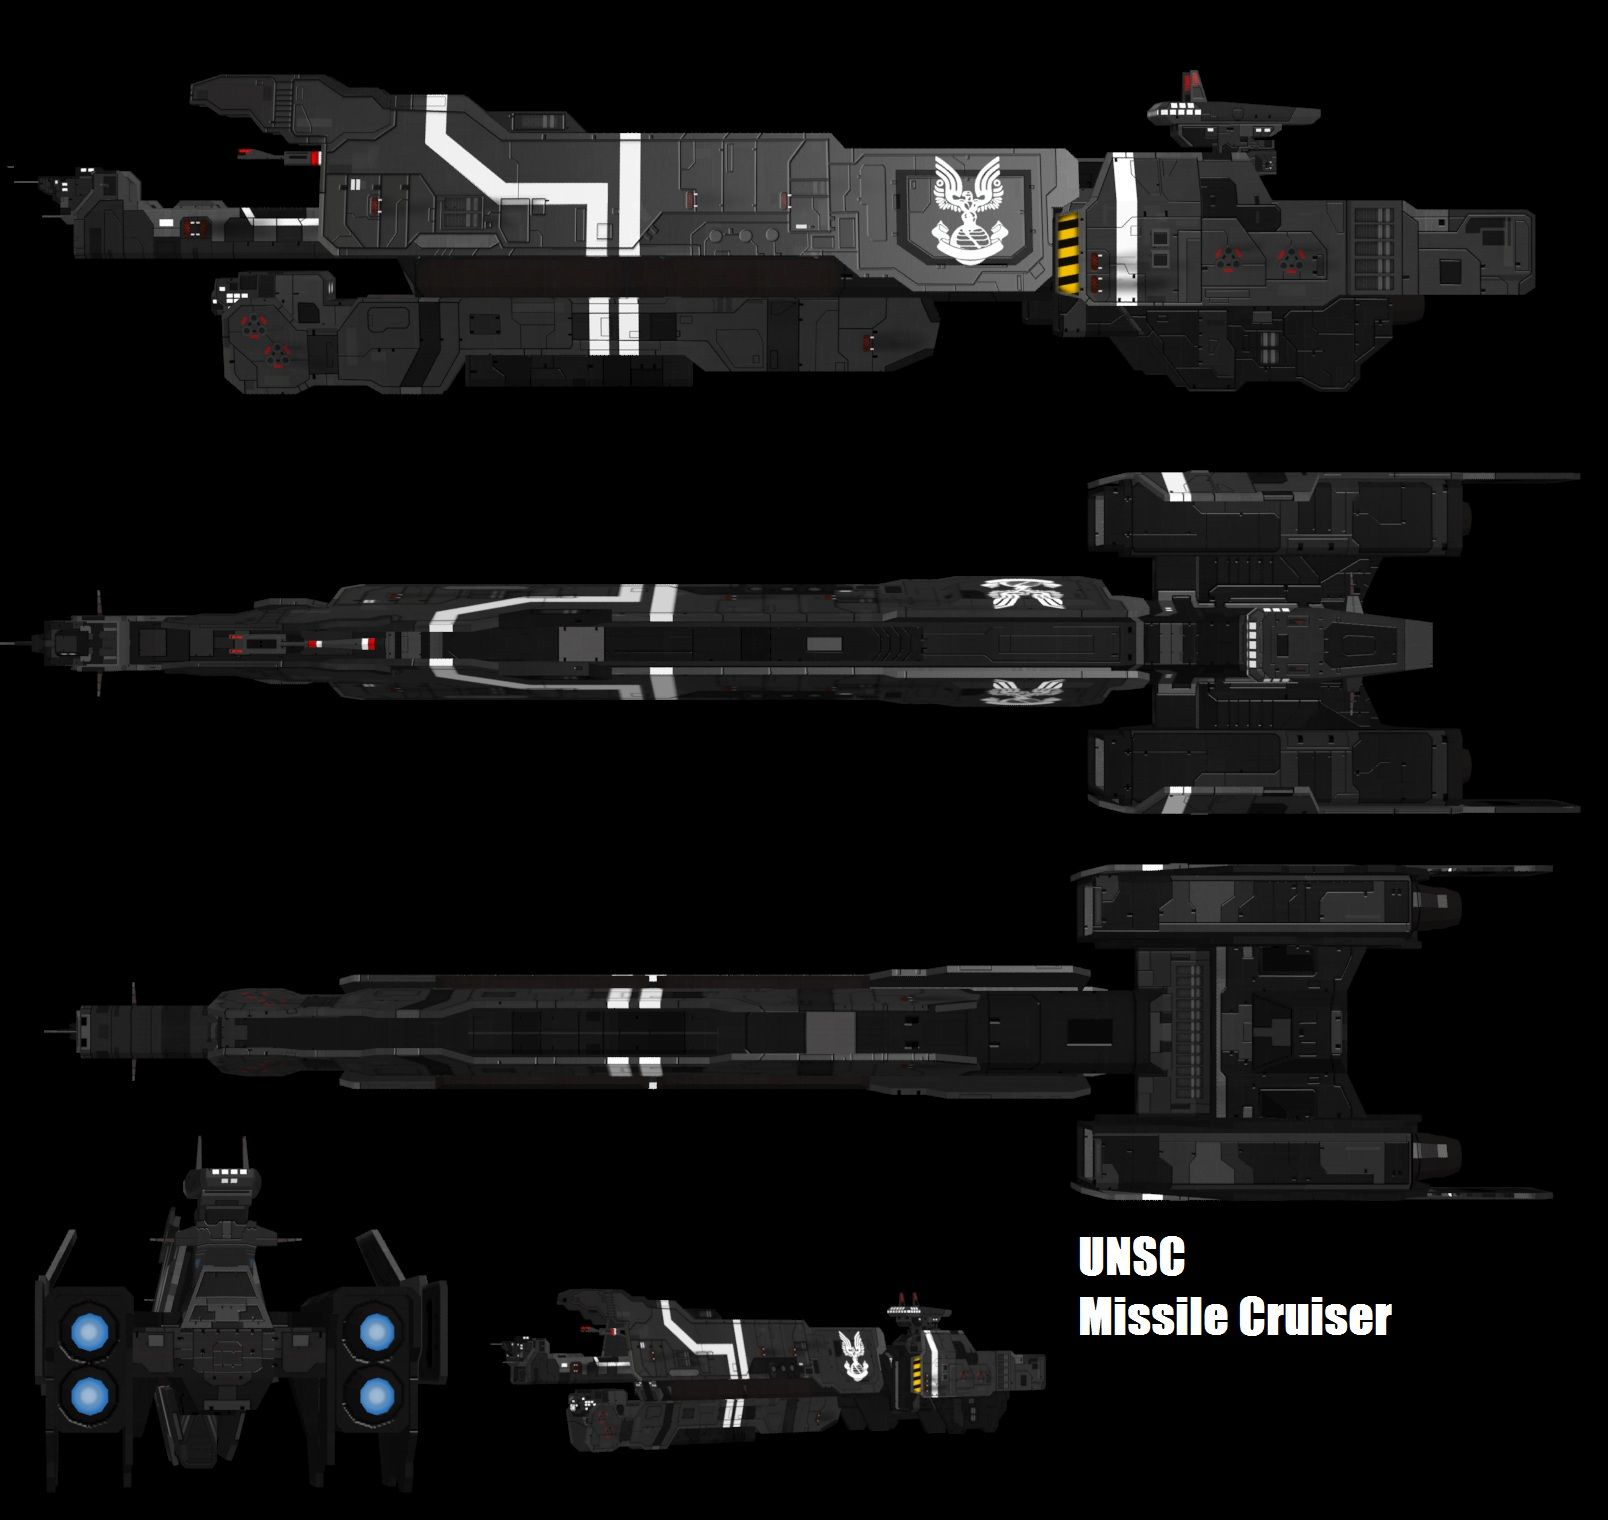 HALO UNSC Missile Cruiser by adimatters on deviantART